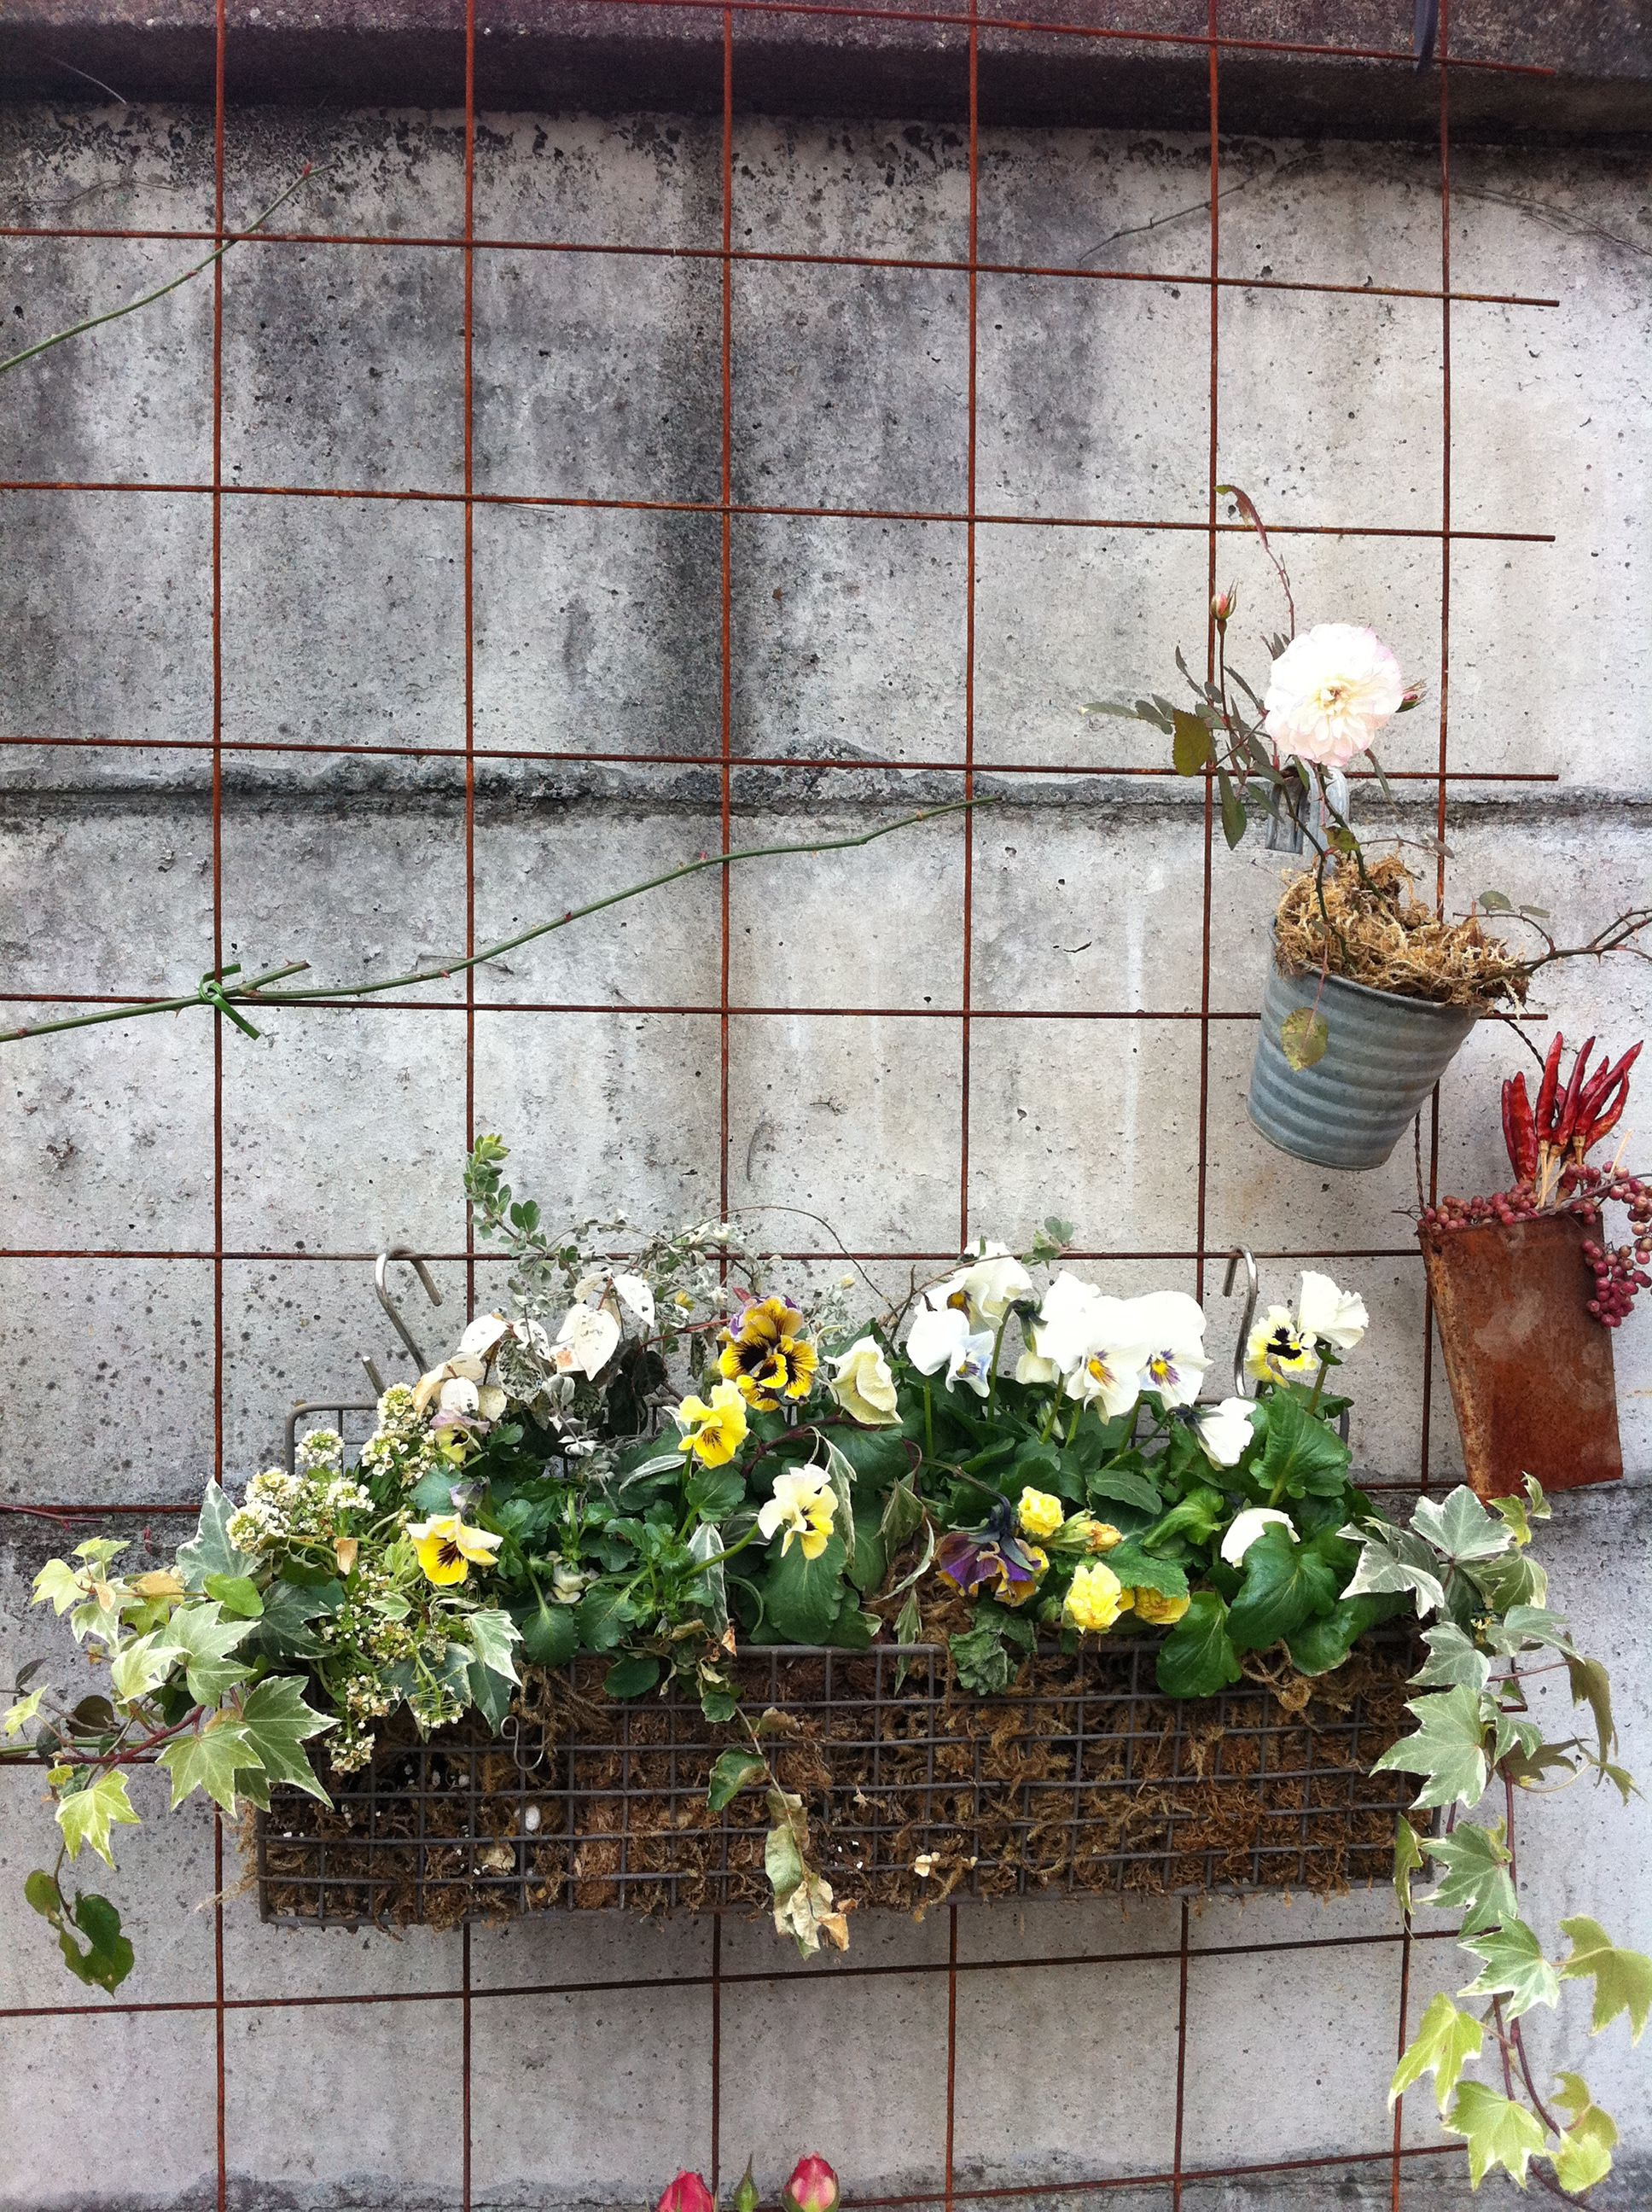 Window box ideas without flowers  hanging flower basket  window boxes u hanging baskets  pinterest